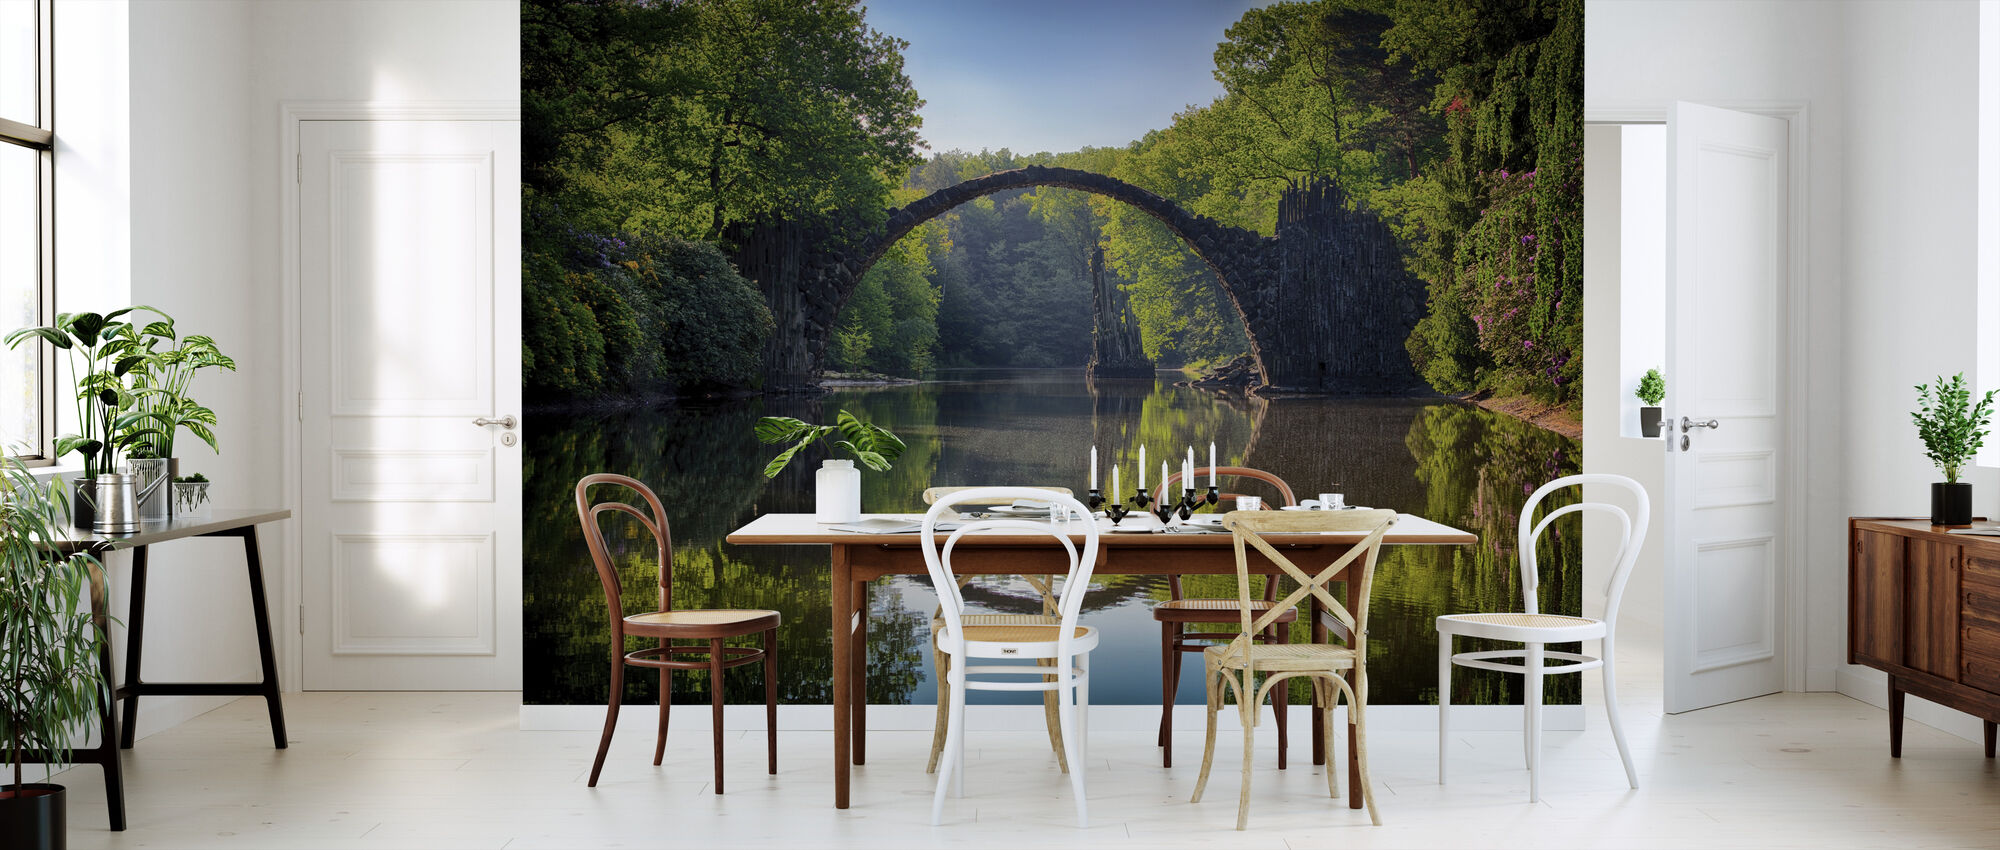 Arch Bridge - Wallpaper - Kitchen